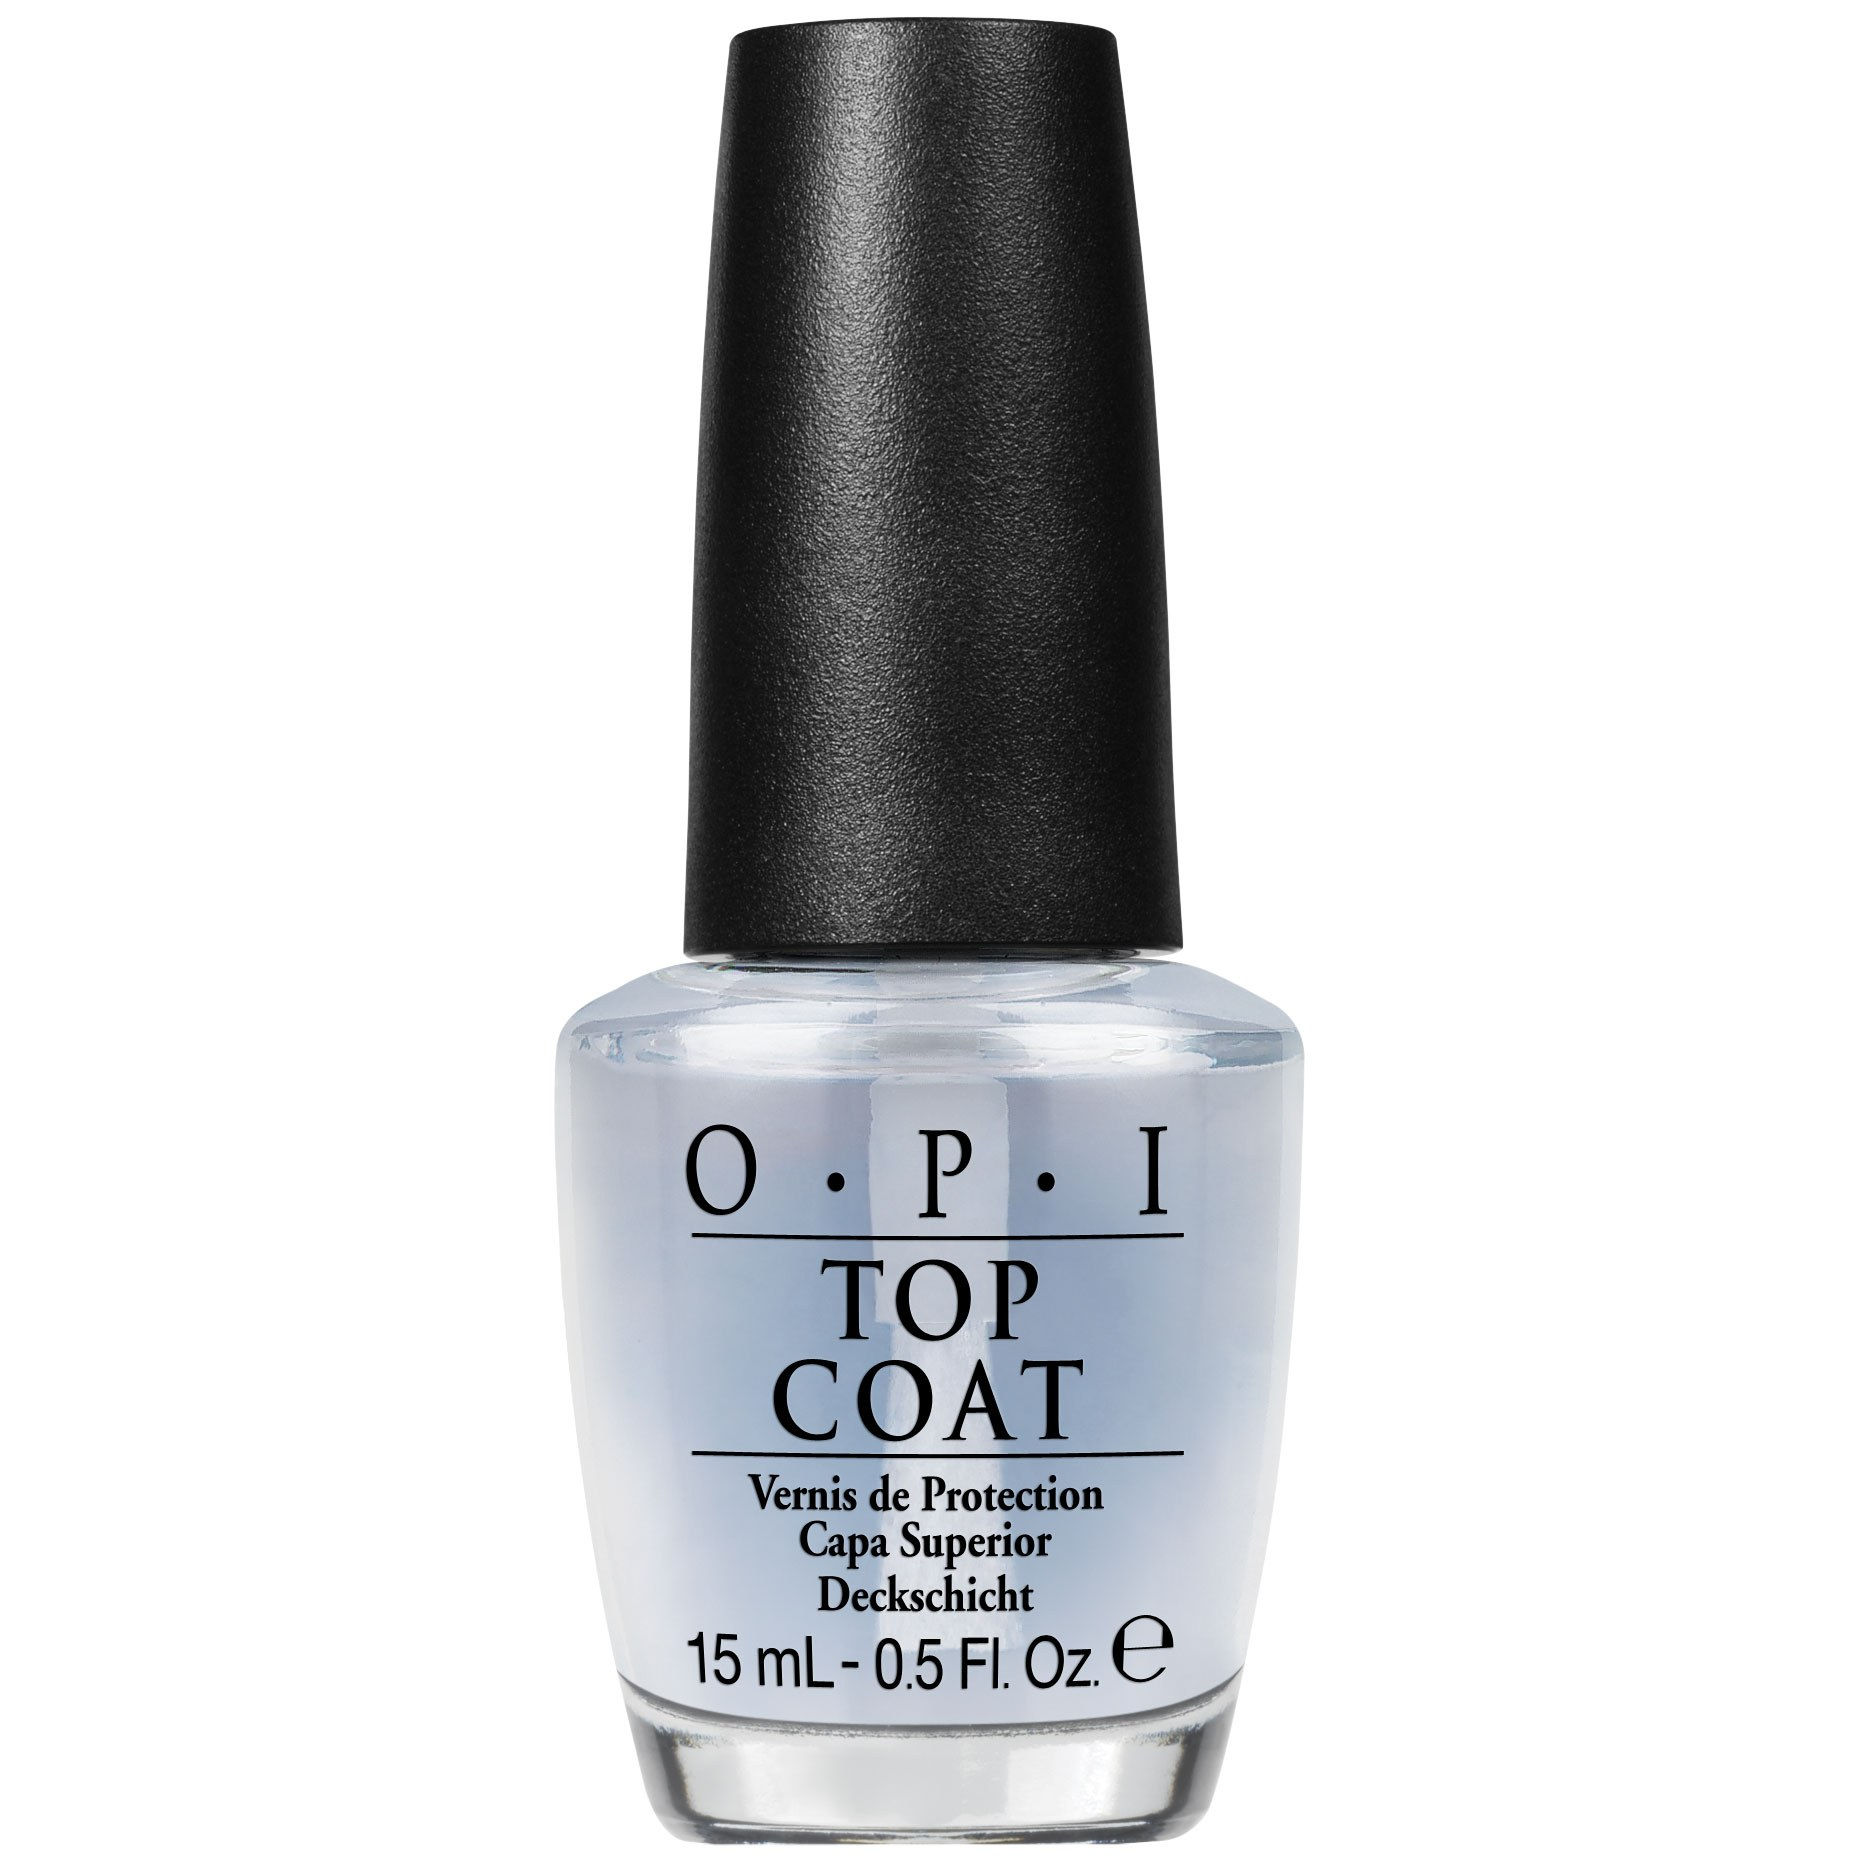 OPI Mani-Pedi: Top Coat